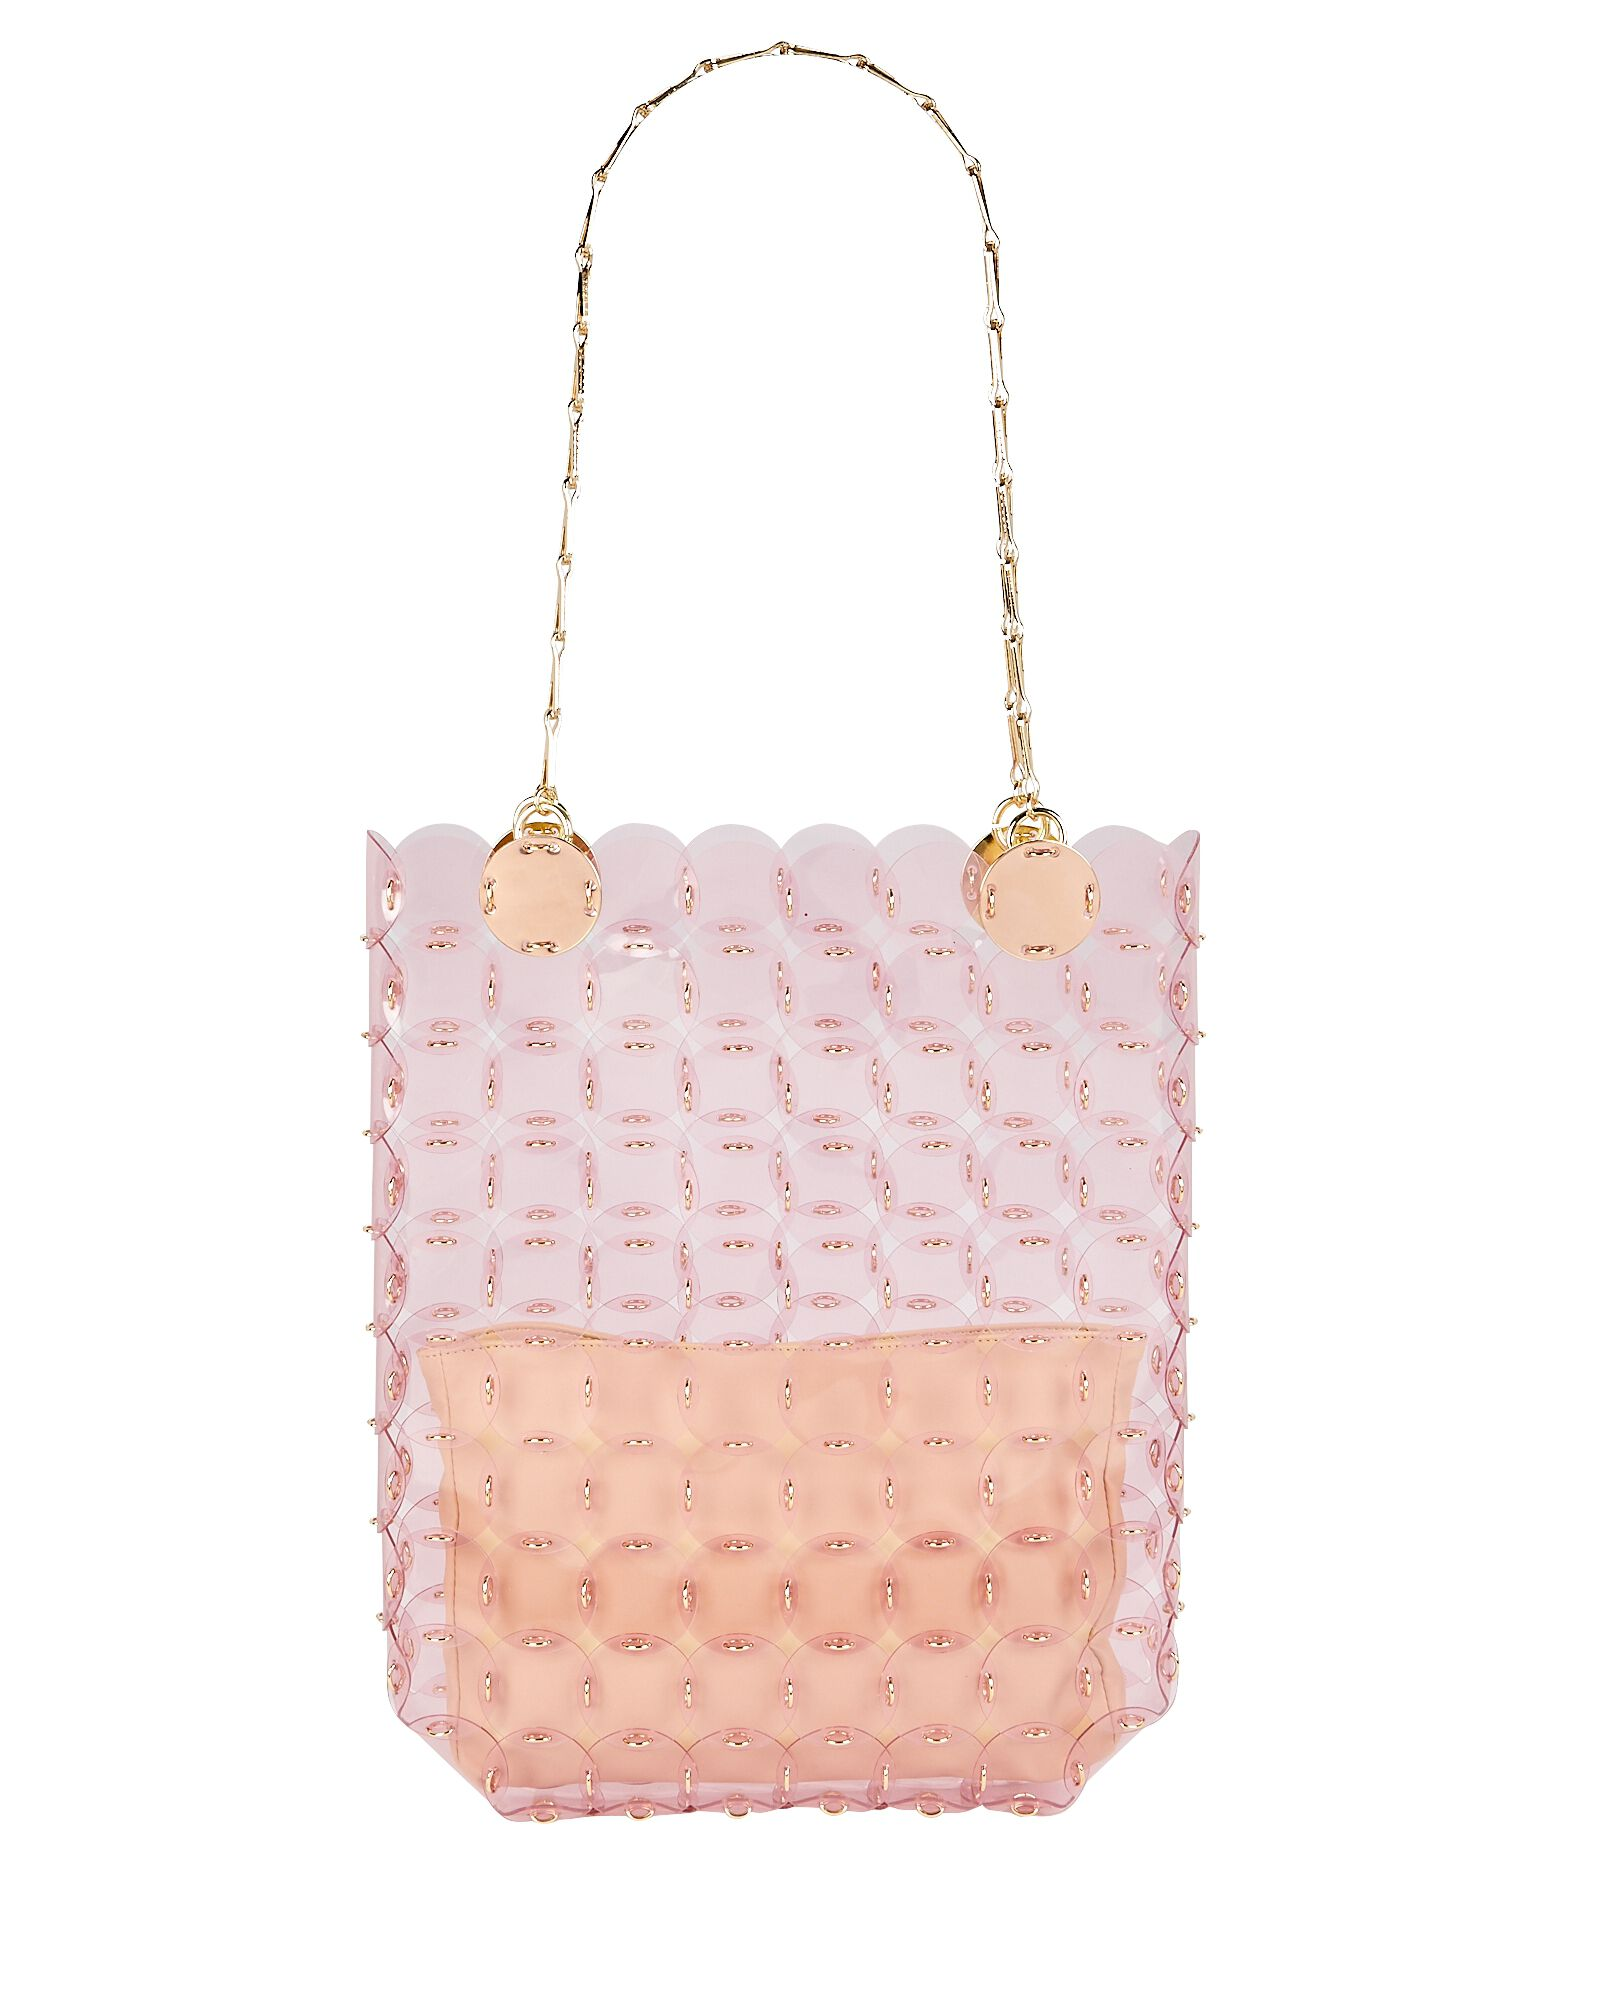 Disco Chain-Mail Tote Bag, PINK, hi-res